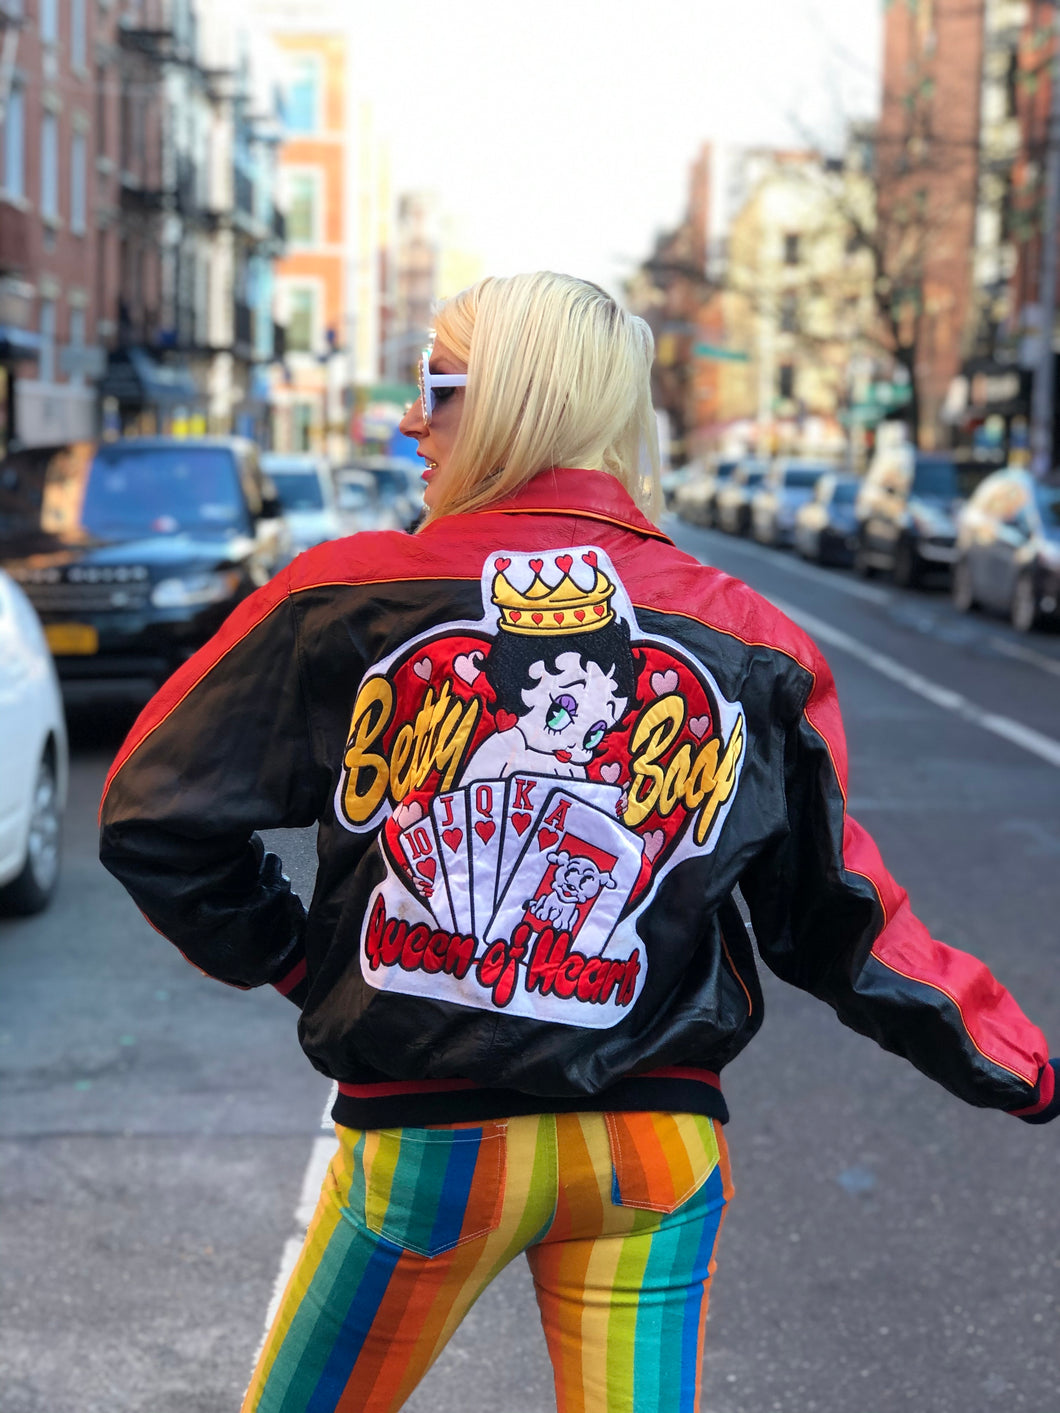 Vintage 80s Leather Betty Boop Bomber Jacket | Jackets - 80s 90s Retro Vintage Clothing | Spark Pretty